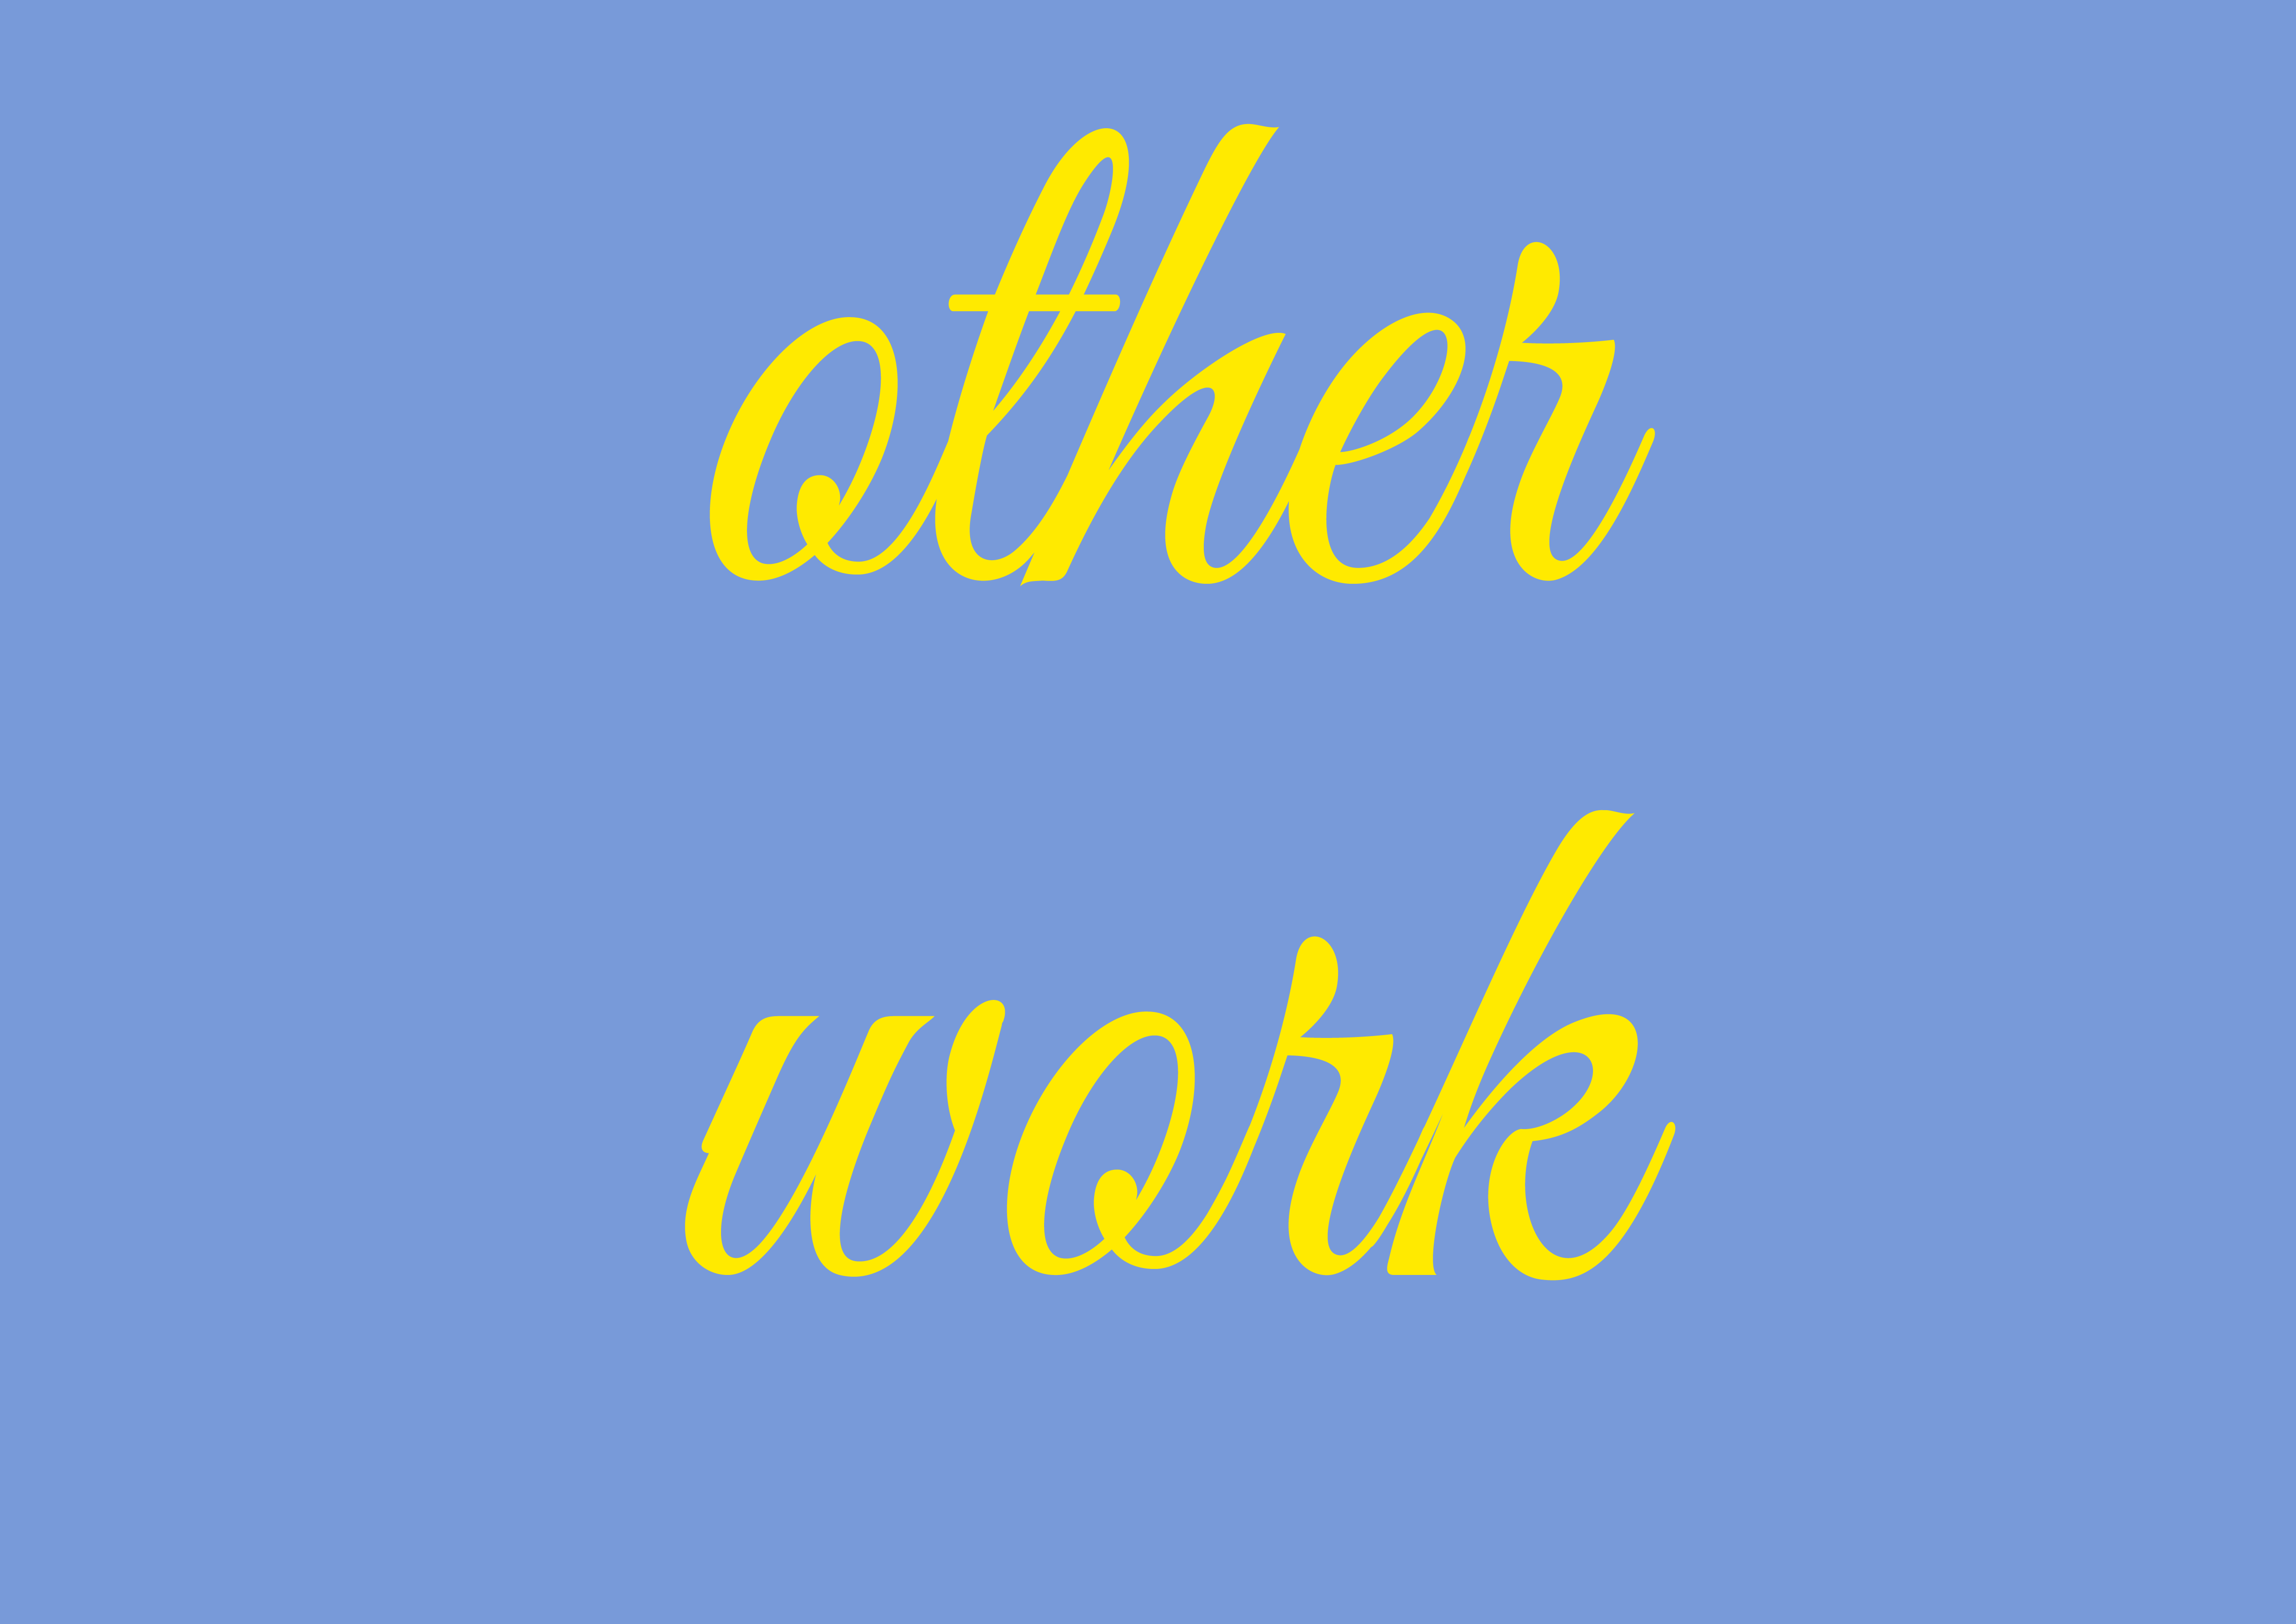 yellow text on blue background 'other work'